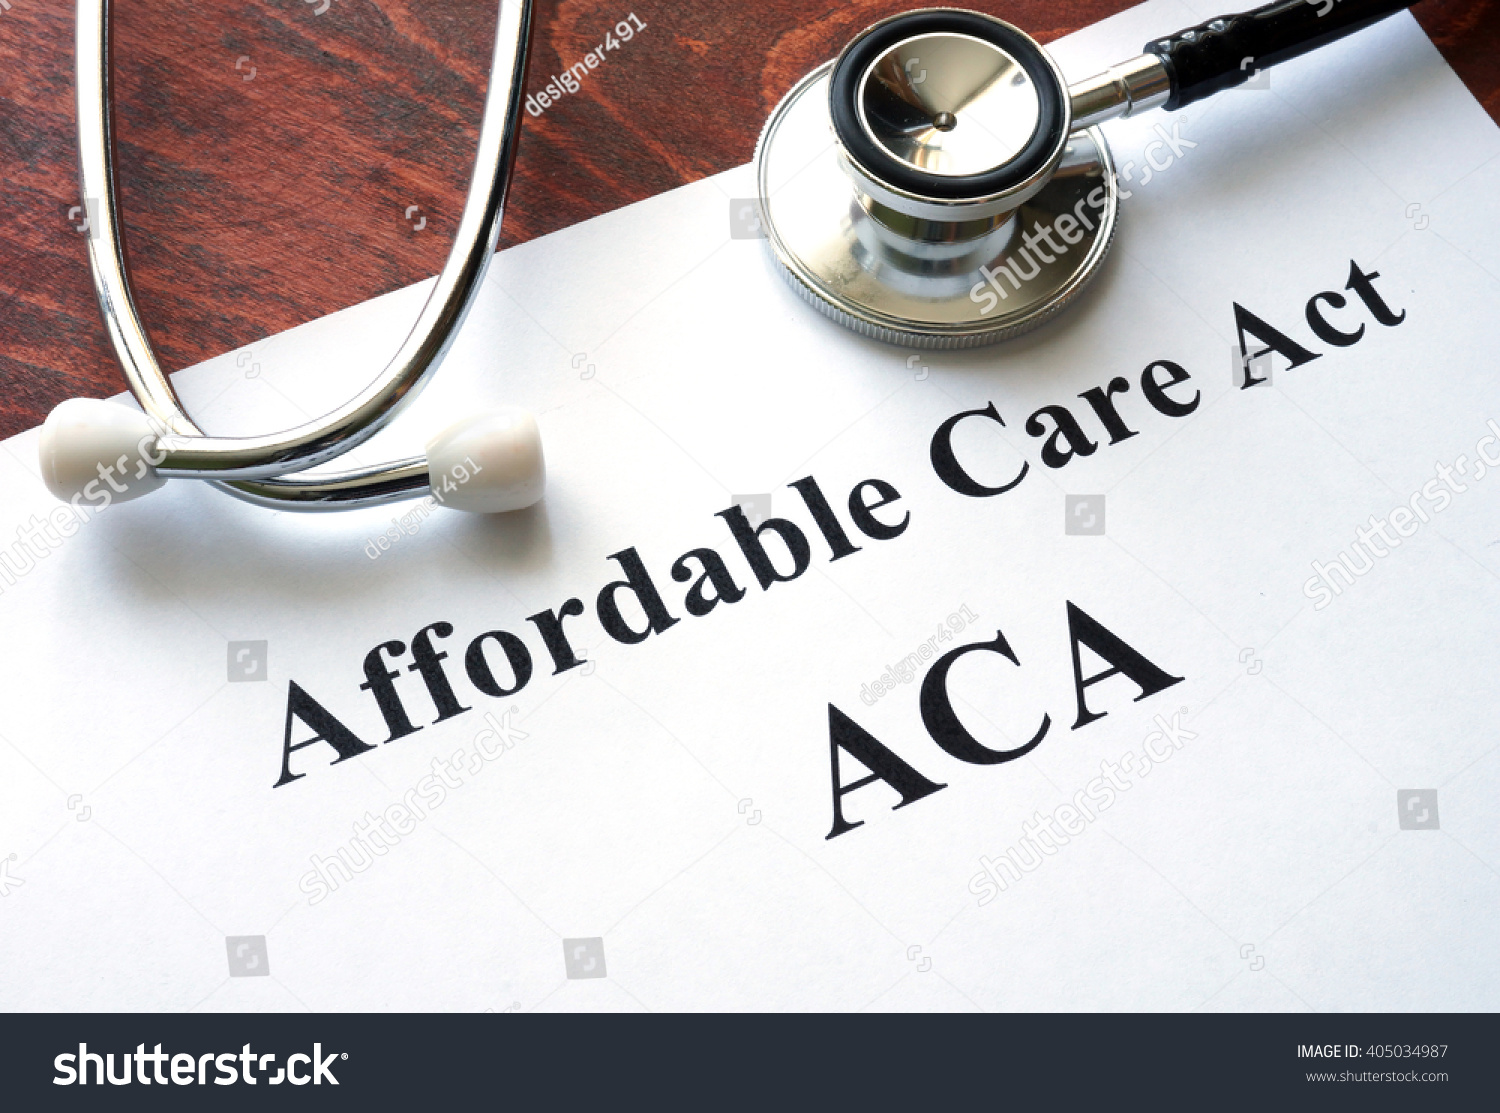 analysis of the affordable care act aca The affordable care act (aca) has served as the main vehicle to expand health  coverage in colorado and nationwide for the past six years.